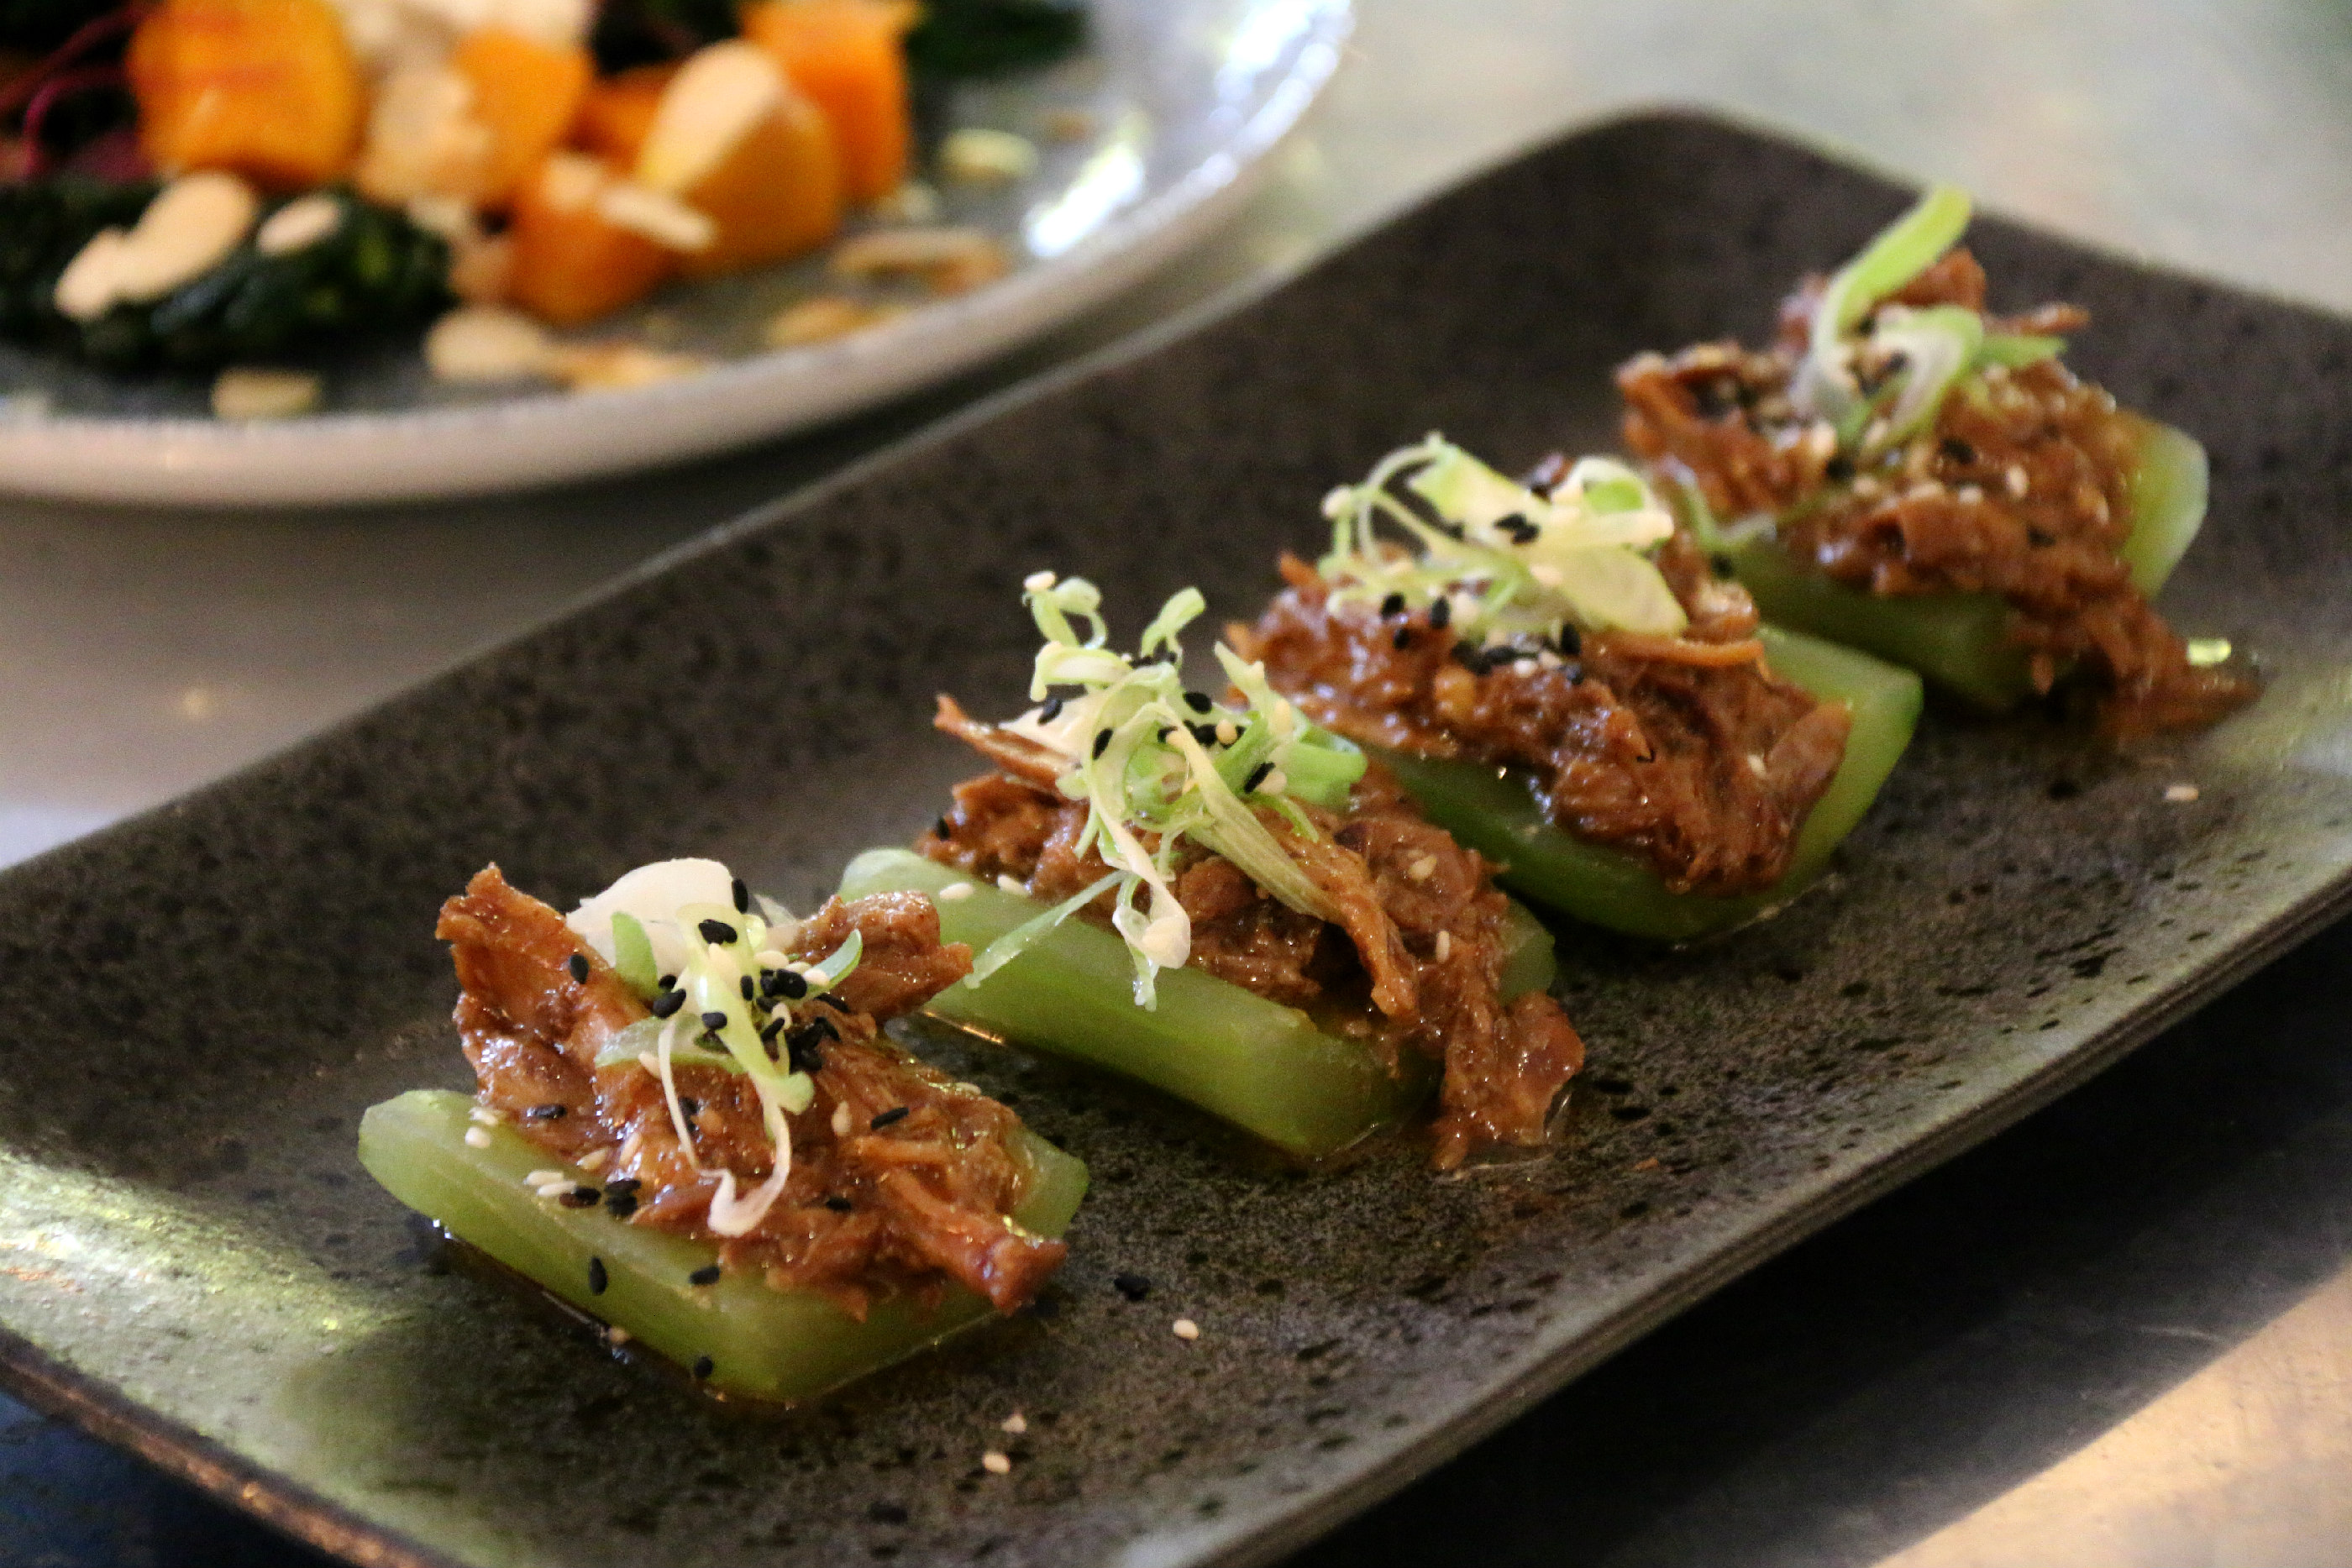 London Pomona restaurant Notting Hill crisp duck cucumber spring onion pum sauce sesame seeds